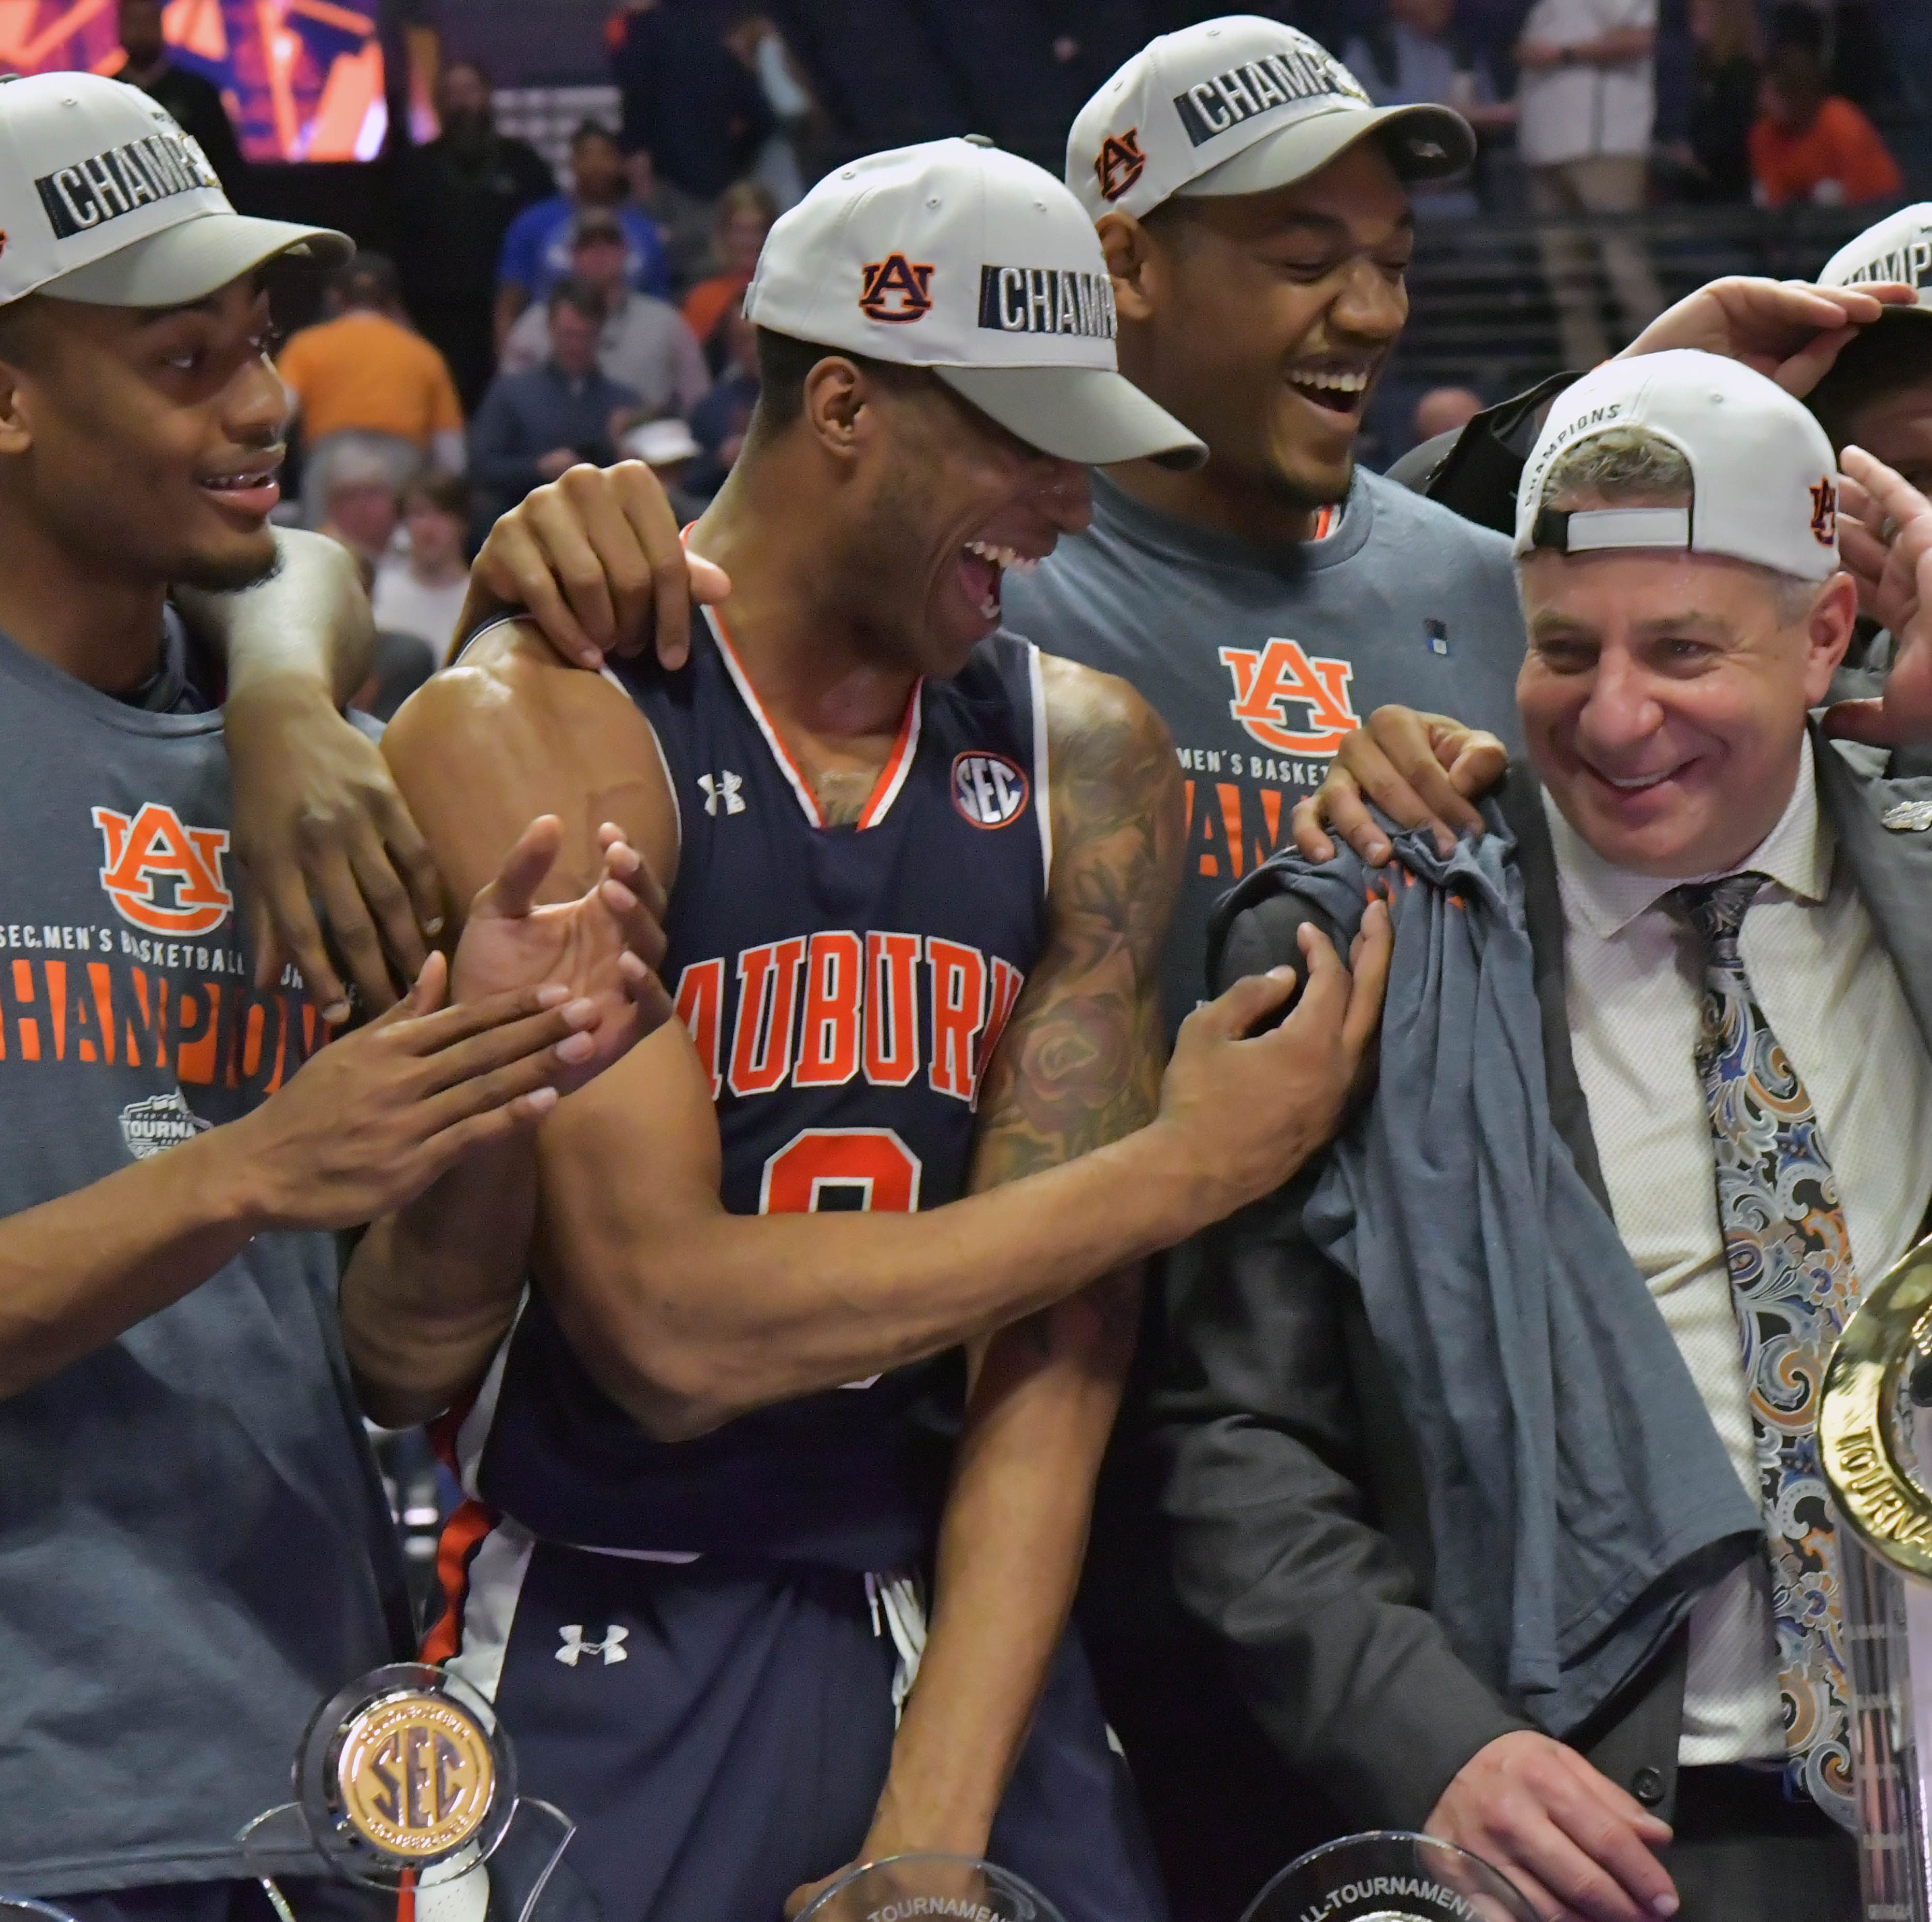 Auburn earns No. 5 seed in NCAA Tournament, will face New Mexico State in first round